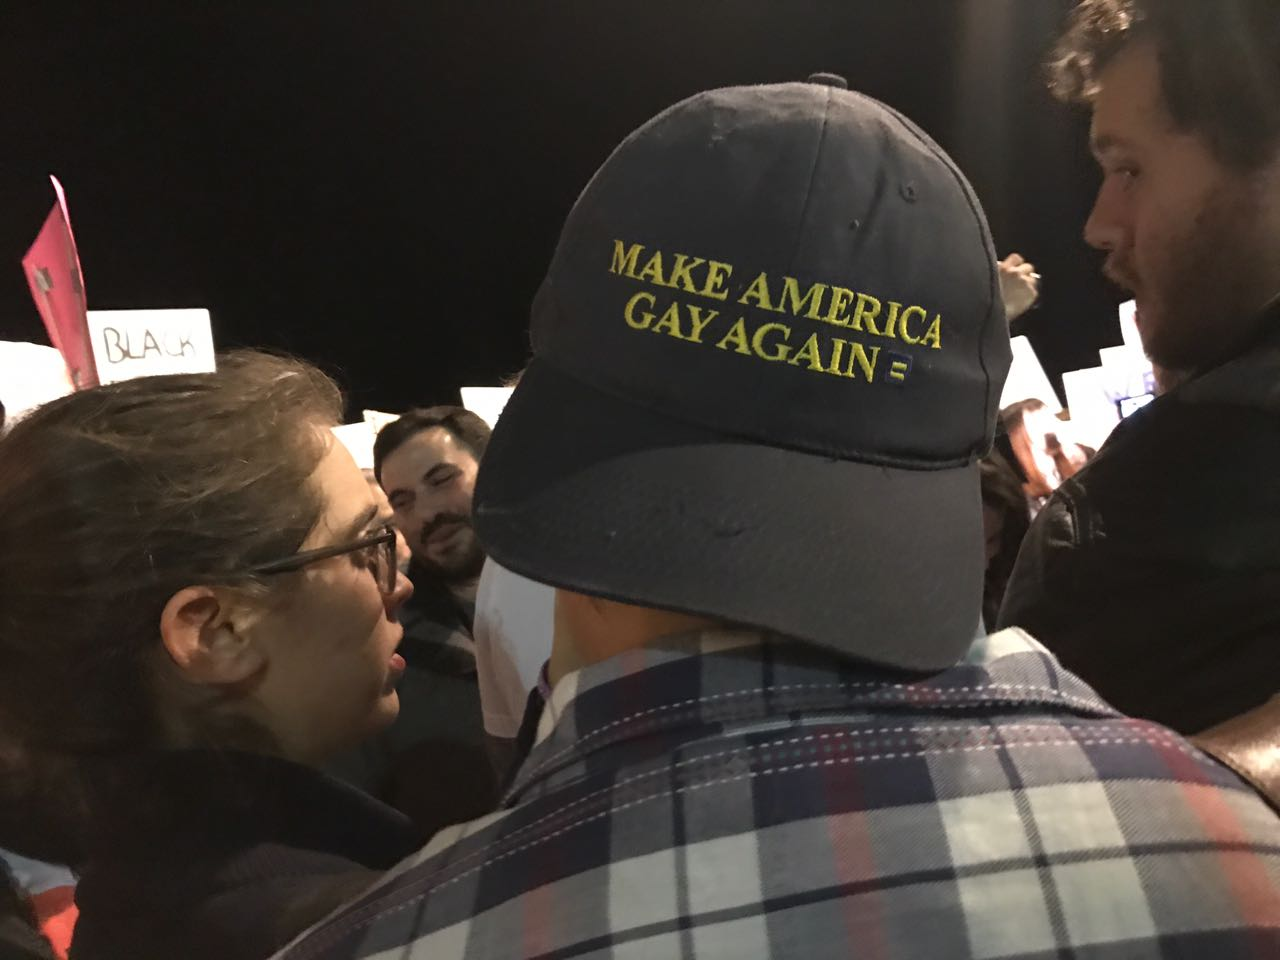 A man wearing a 'Make America Gay Again' hat takes part in the Women's March protest outside the U.S. embassy in Tel Aviv, January 21, 2017. (Tomer Neuberg/Flash90)